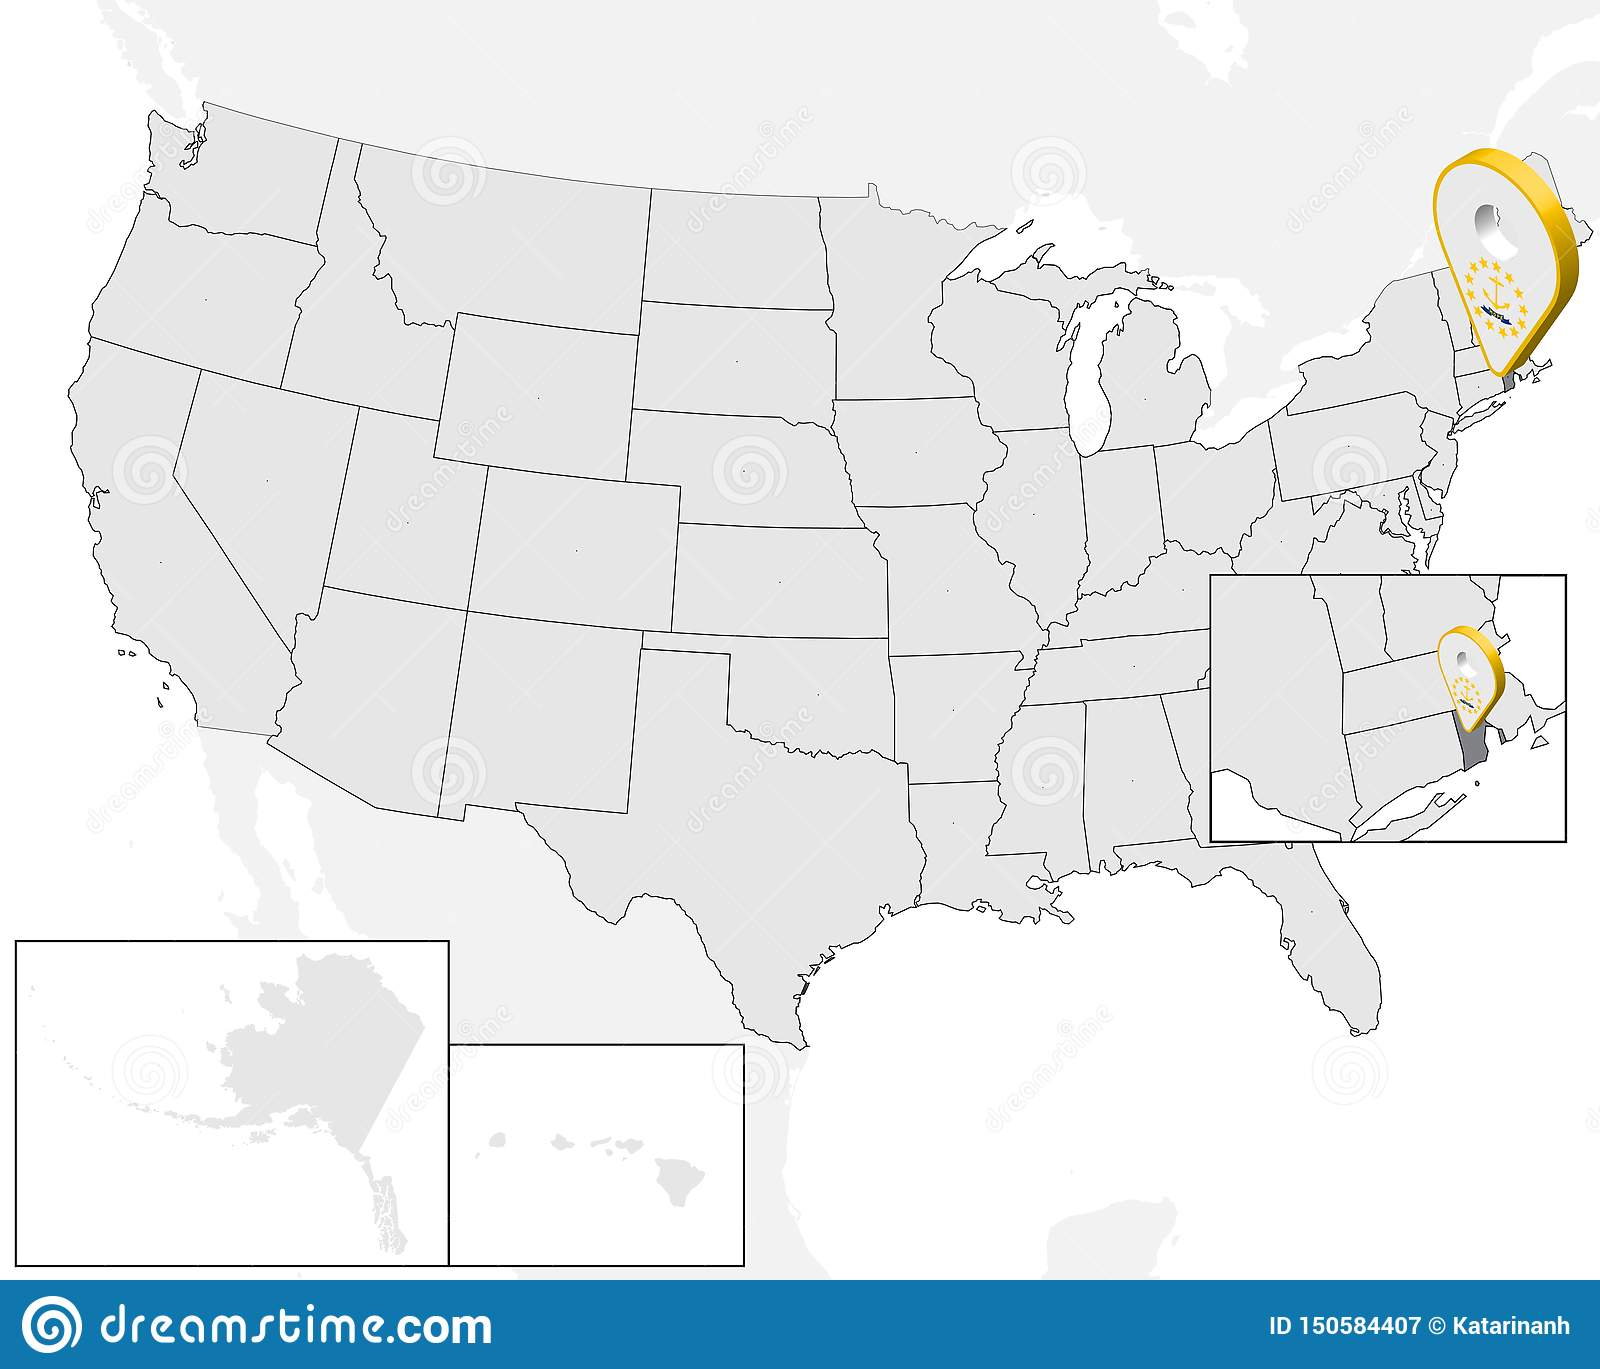 rhode island on the us map Location Map Rhode Island On Map Usa United States Of America 3d rhode island on the us map